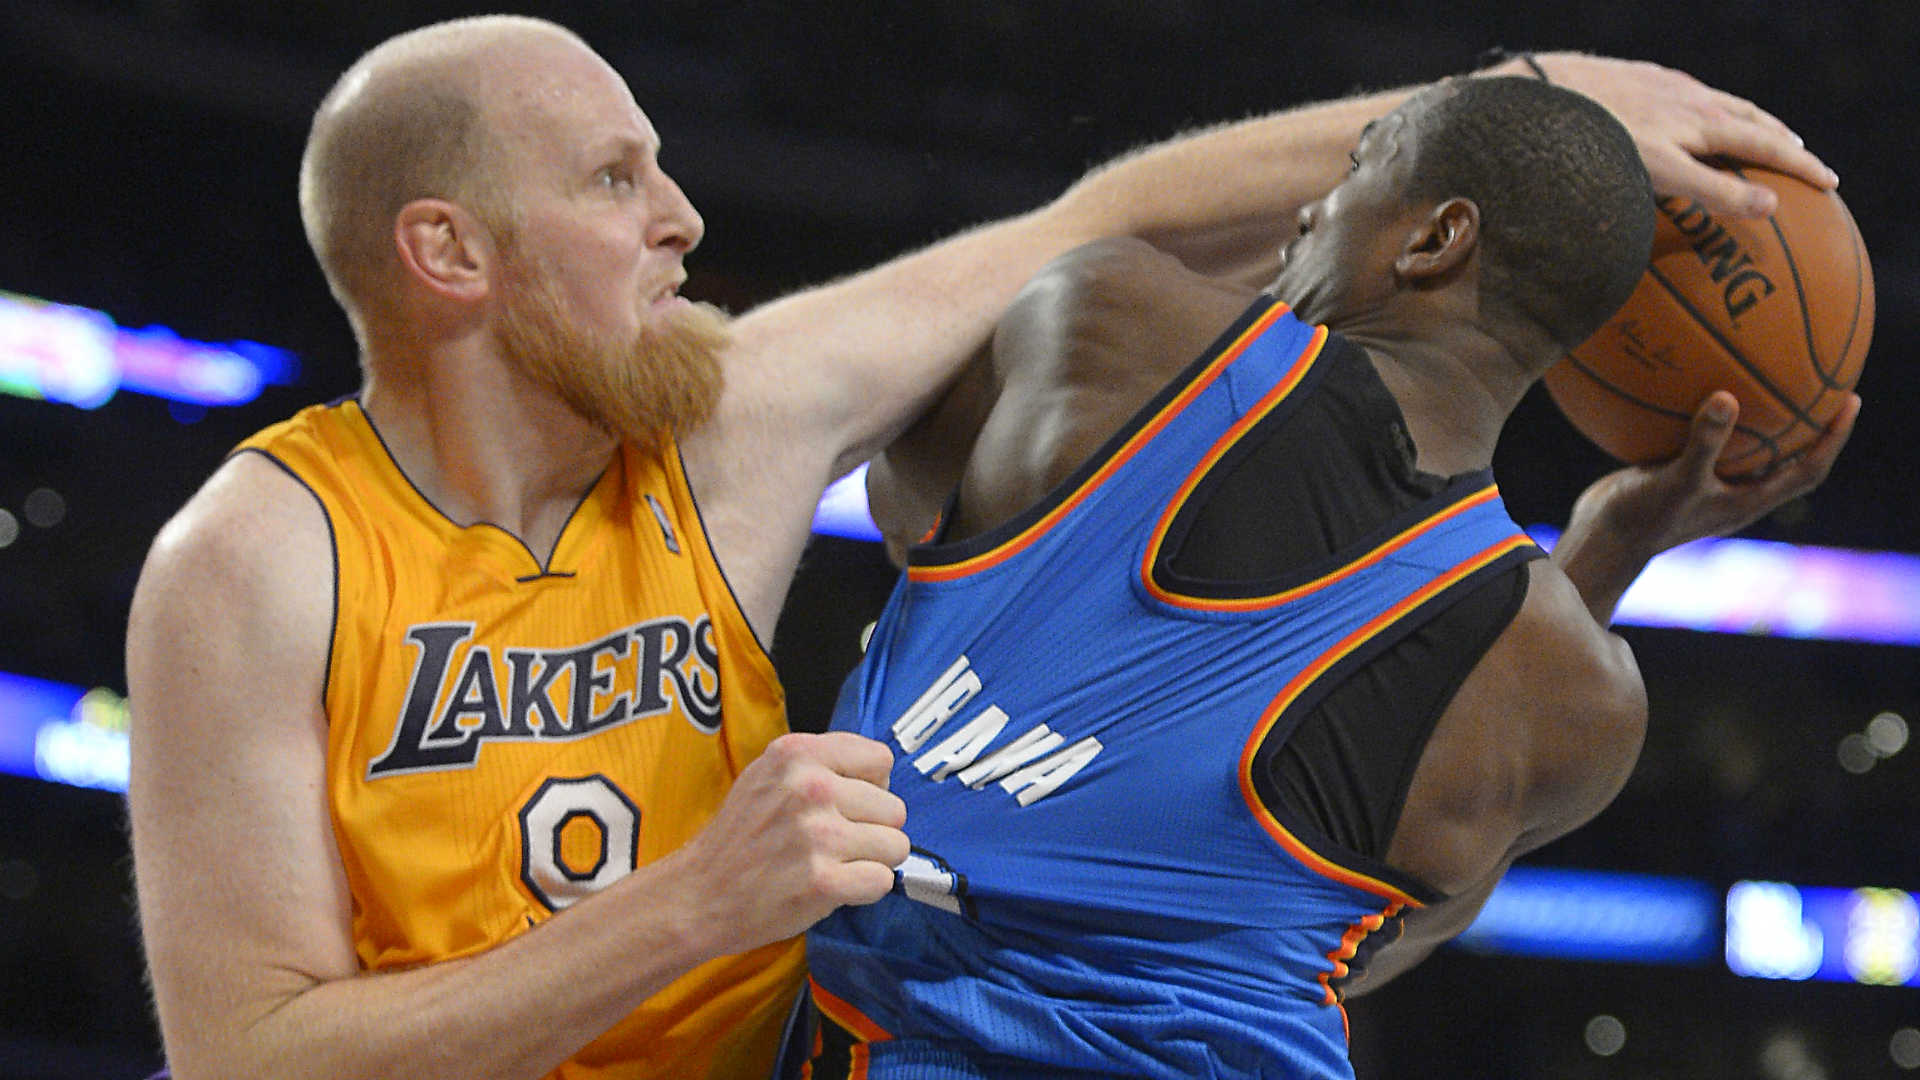 Chris-Kaman-070314-AP-FTR.jpg